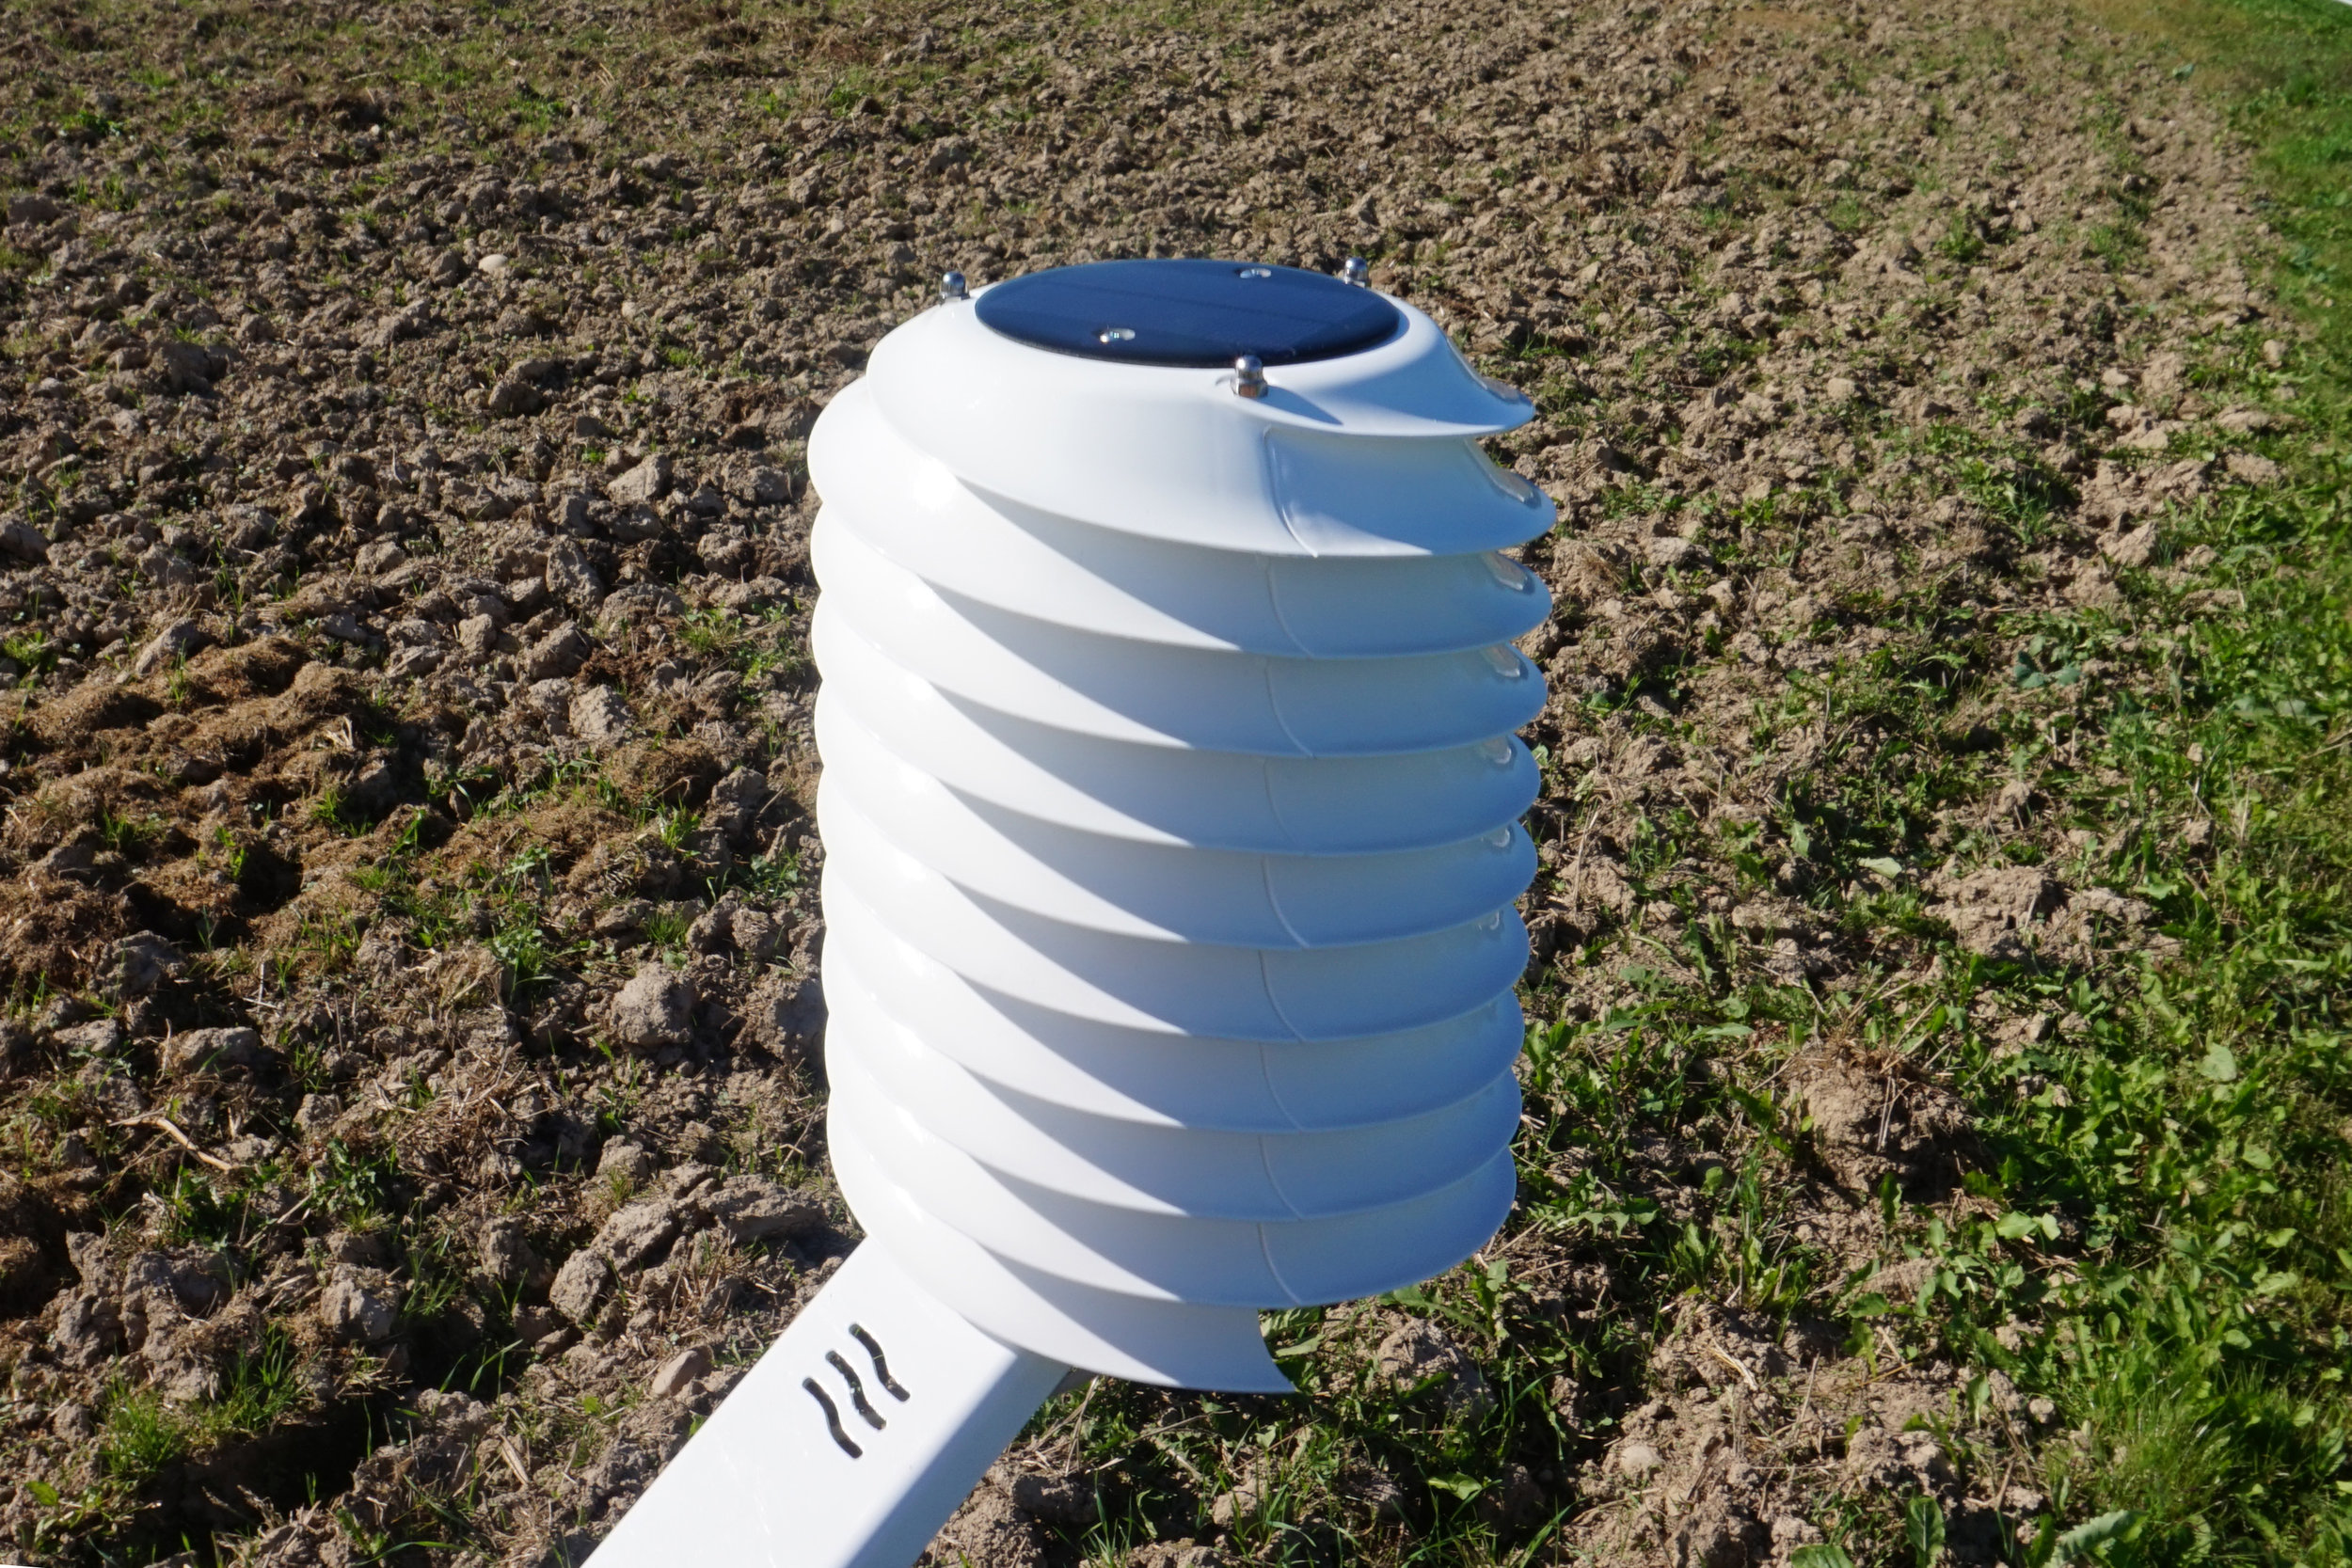 MeteoHelix Pro weather station in agricultural field experiments